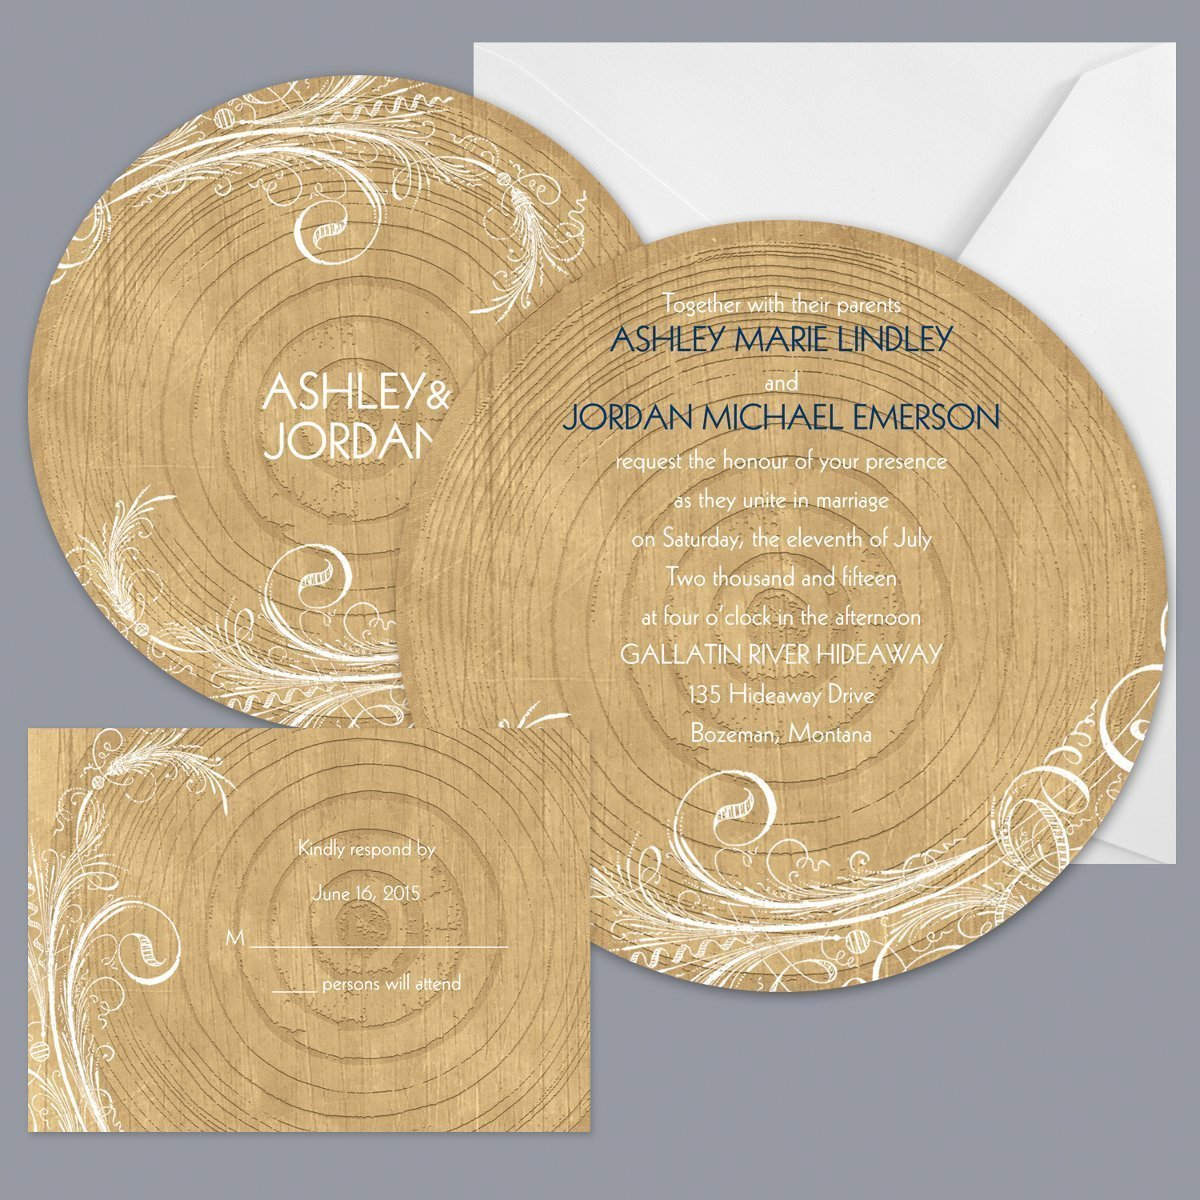 woodgrain circle invitation item number db9855aa5c a rustic woodsy or outdoor wedding theme will loading zoom - Outdoor Wedding Invitations